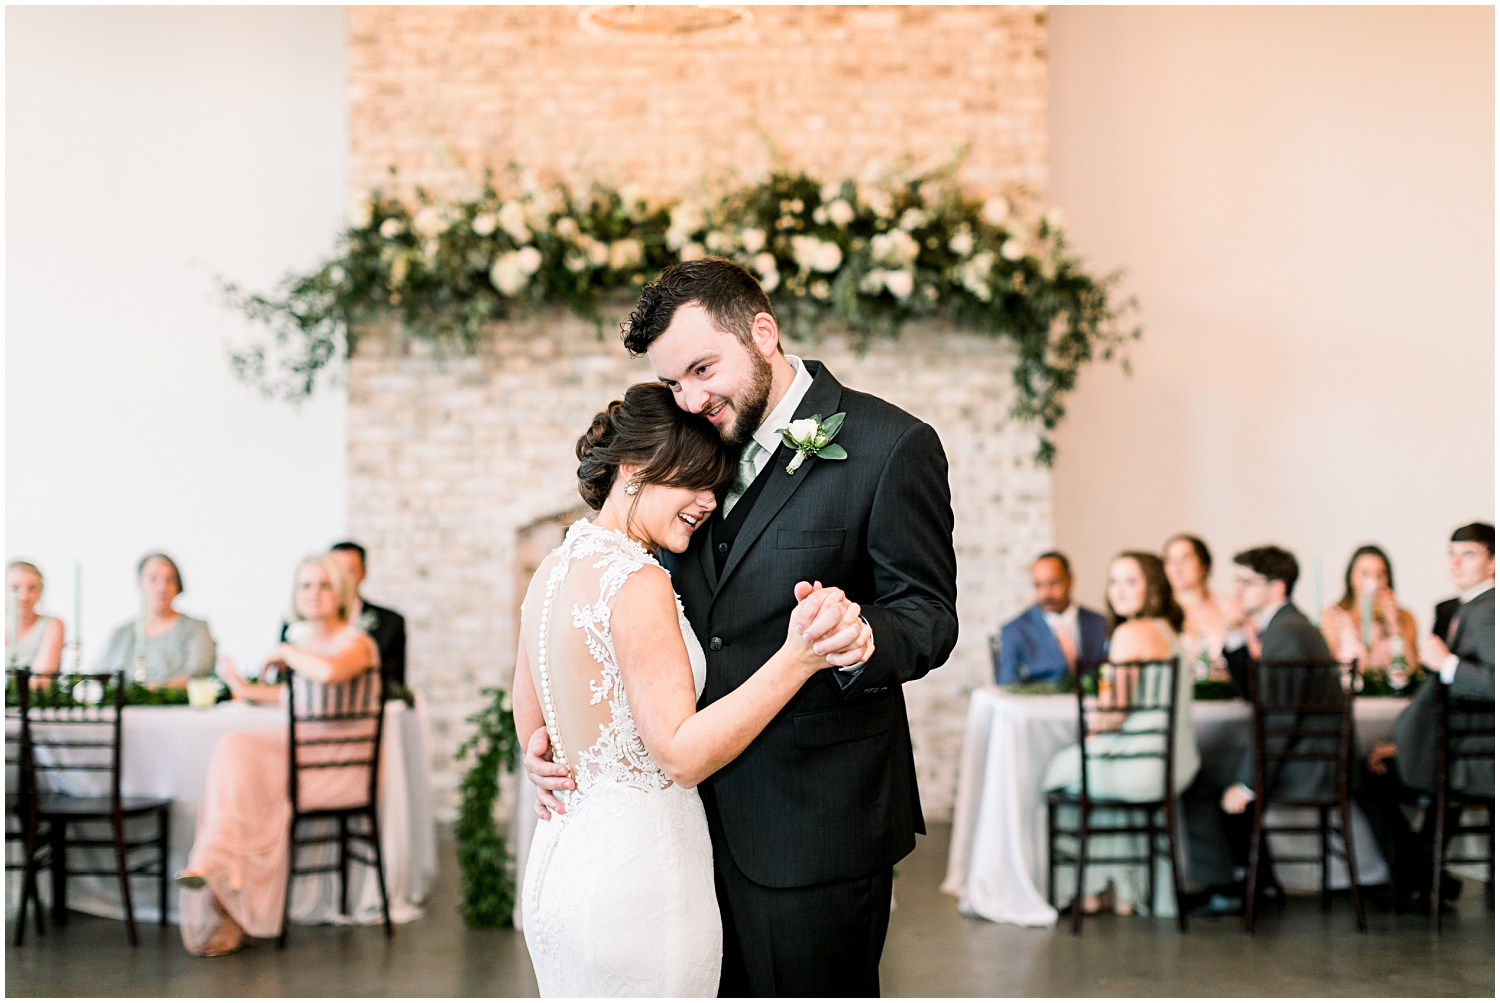 Wrightsville Manor Wedding Venue, Downtown Wilmington NC Wedding_Erin L. Taylor Photography_0043.jpg